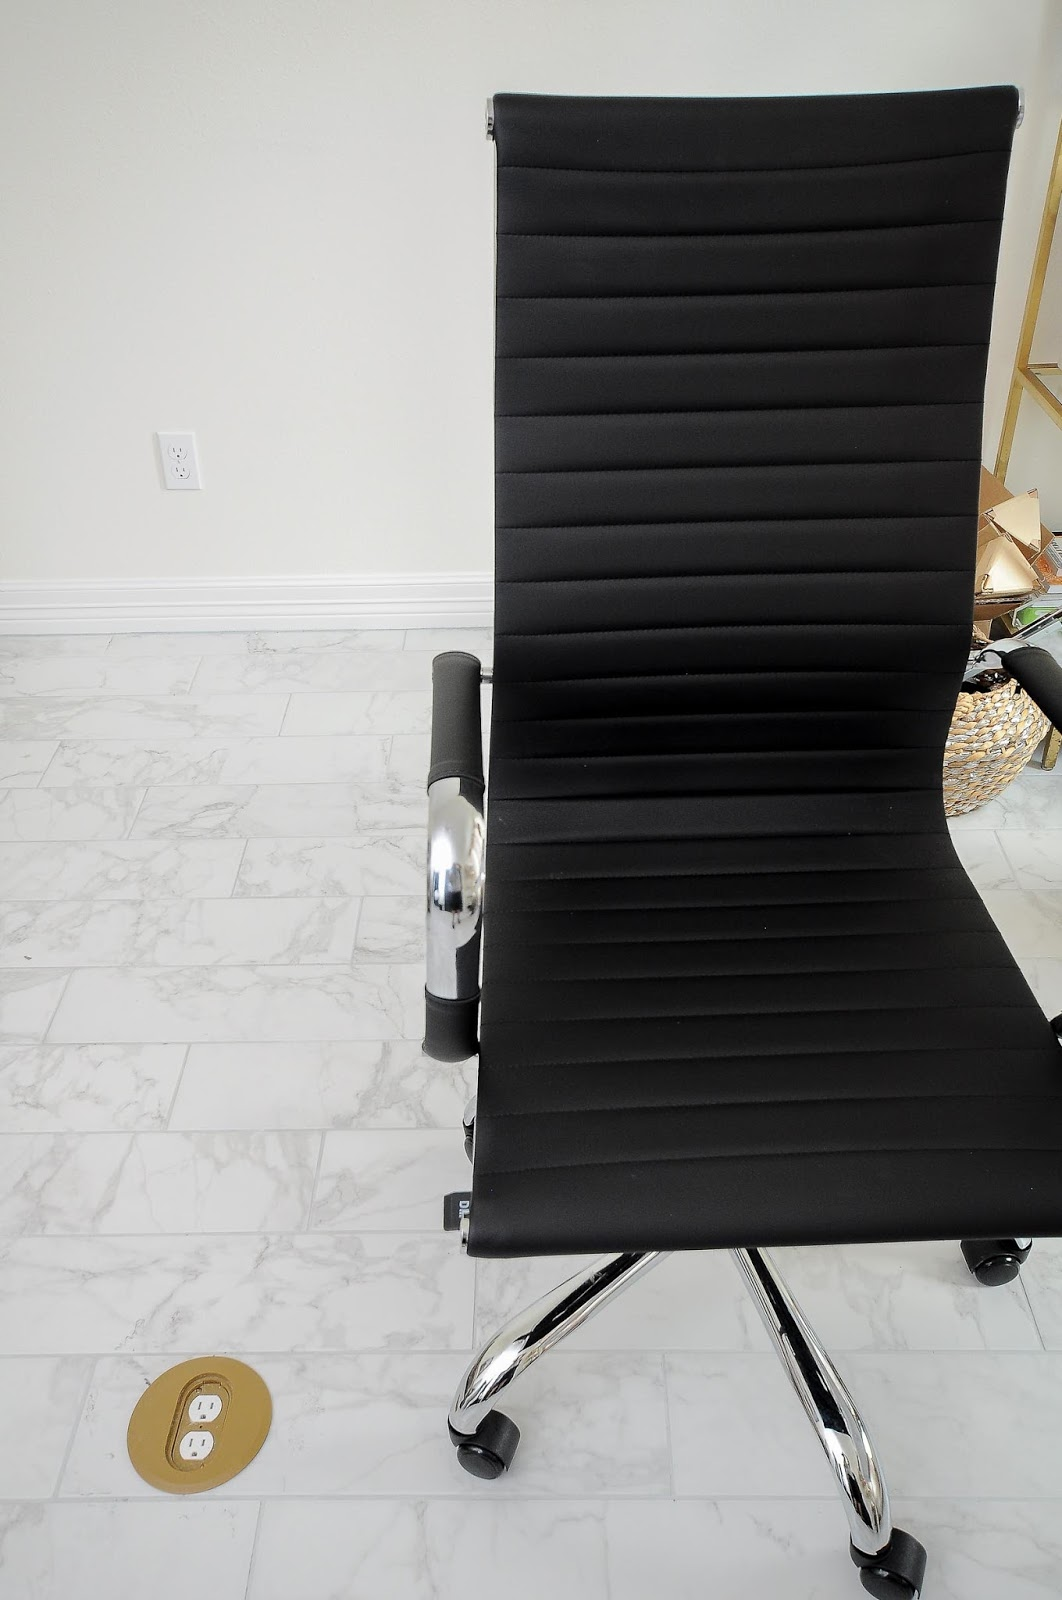 Serge black and chrome high back office rolling chair.